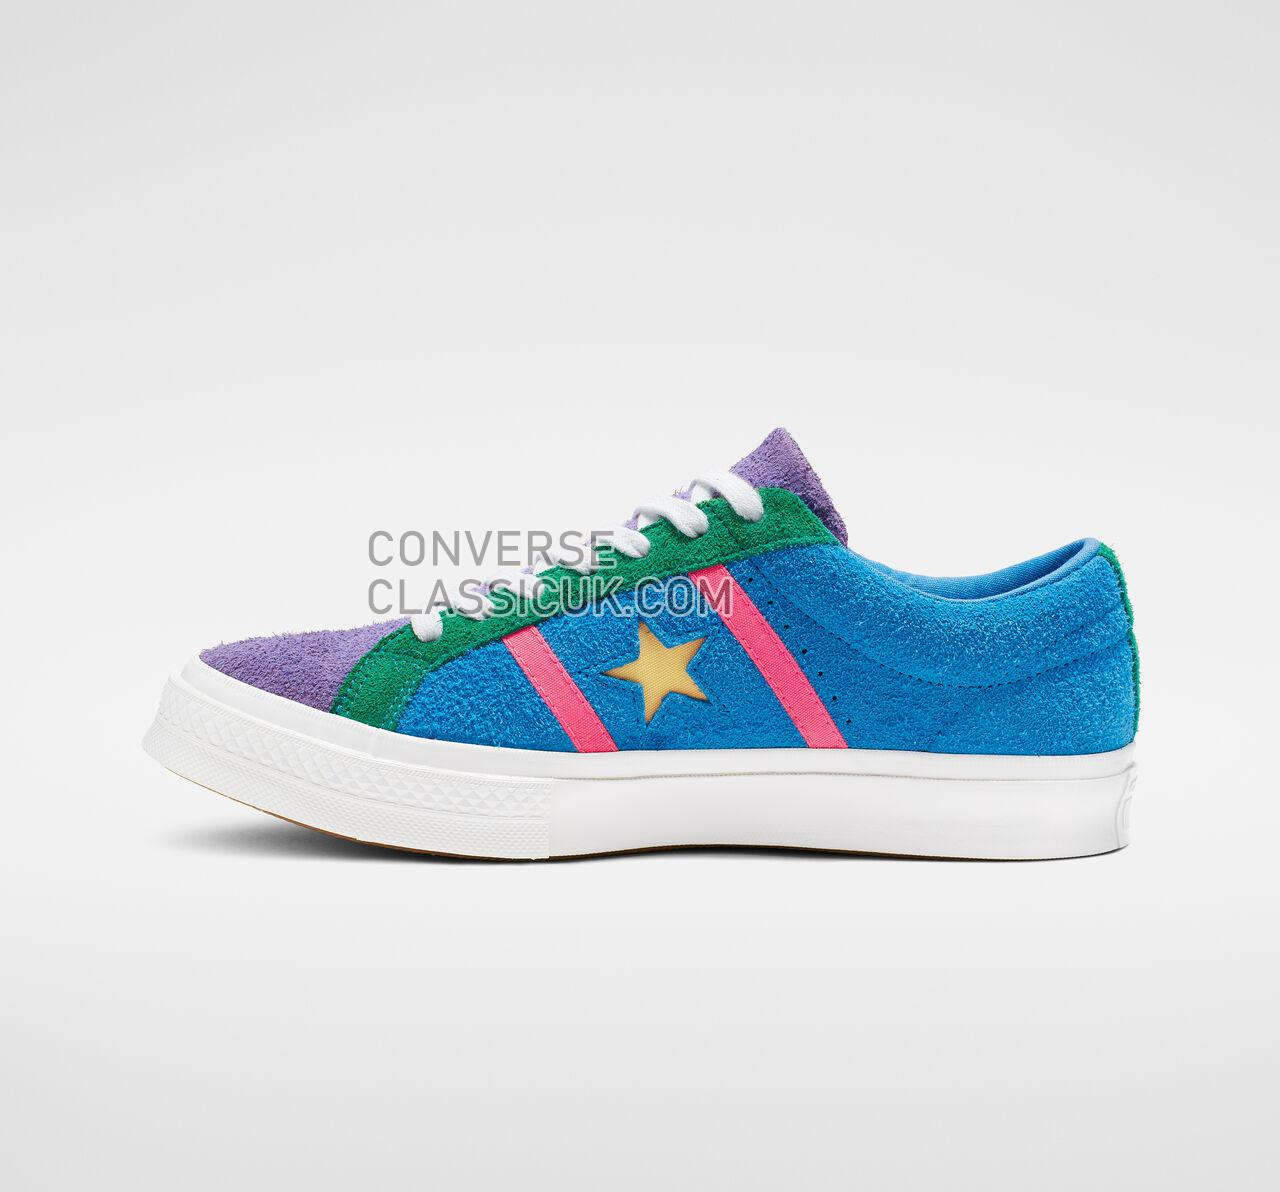 Converse One Star Academy Mens Womens Unisex 164392C Totally Blue/Racer Pink/White Shoes